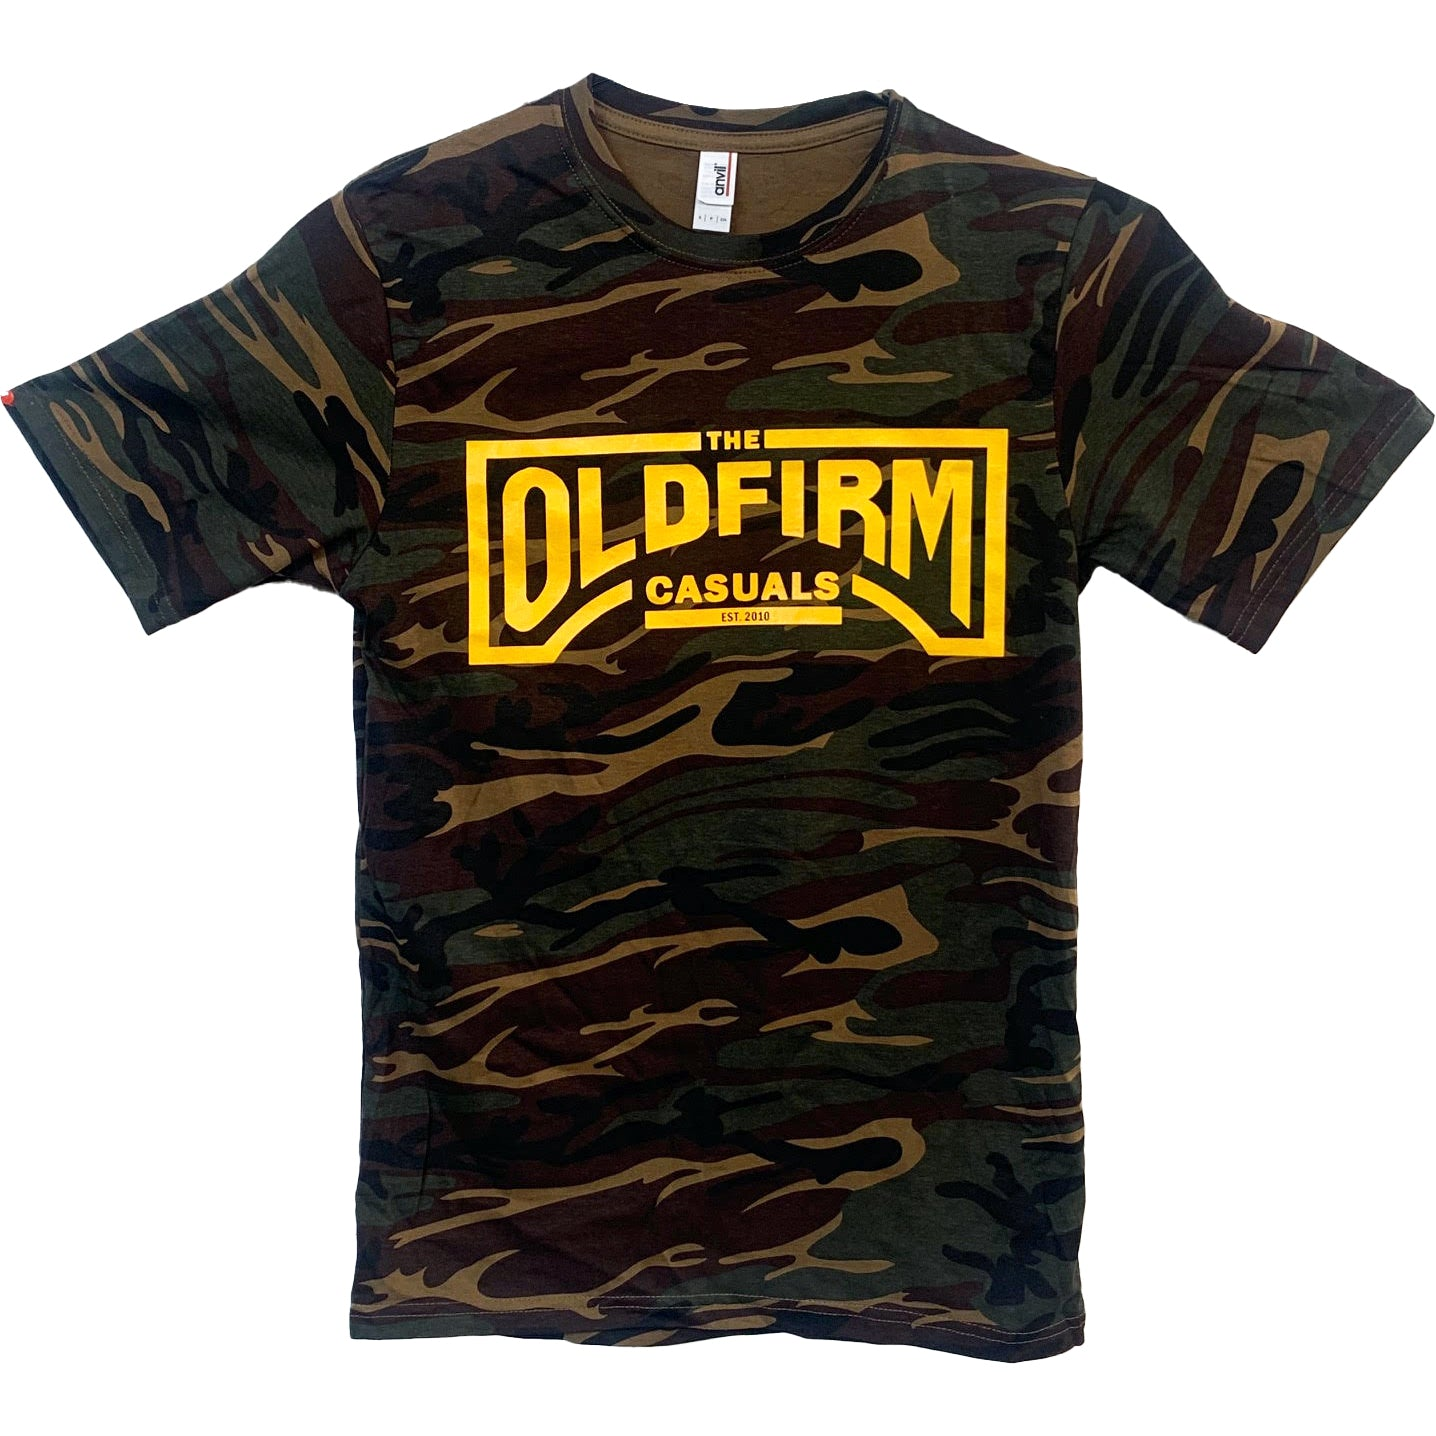 The Old Firm Casuals - Logo - Camo - T-Shirt